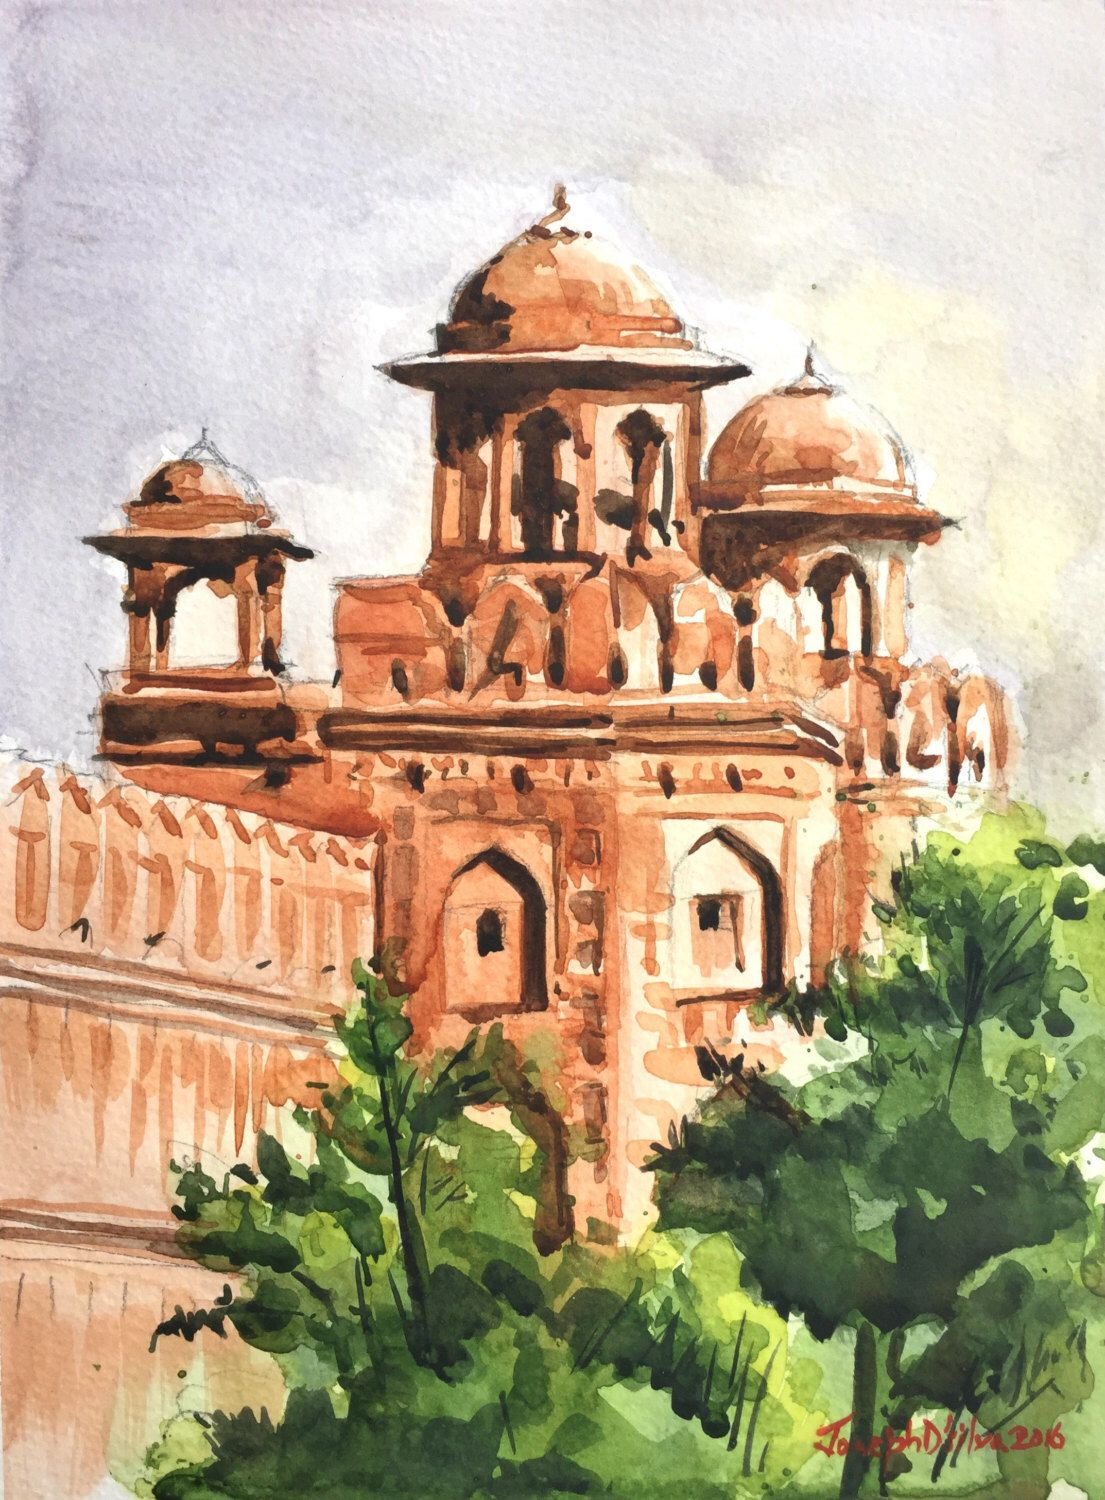 Connecticut watercolor artists directory - Red Fort India Indian Painting Delhi Painting India Art India Wall Art Original Watercolor Painting Watercolors Paintings Original